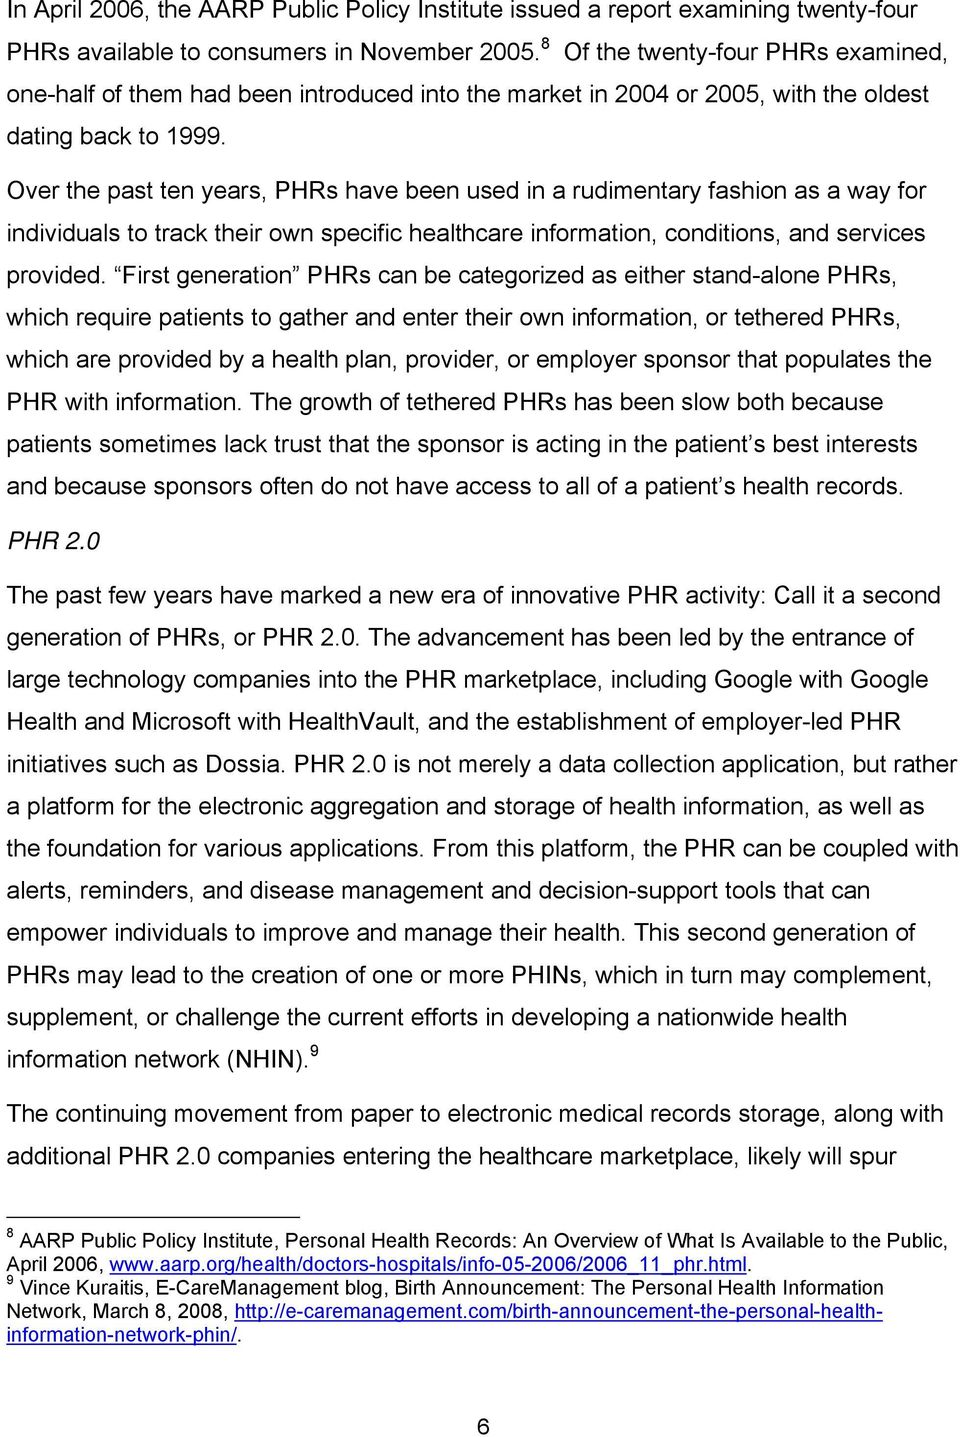 Over the past ten years, PHRs have been used in a rudimentary fashion as a way for individuals to track their own specific healthcare information, conditions, and services provided.